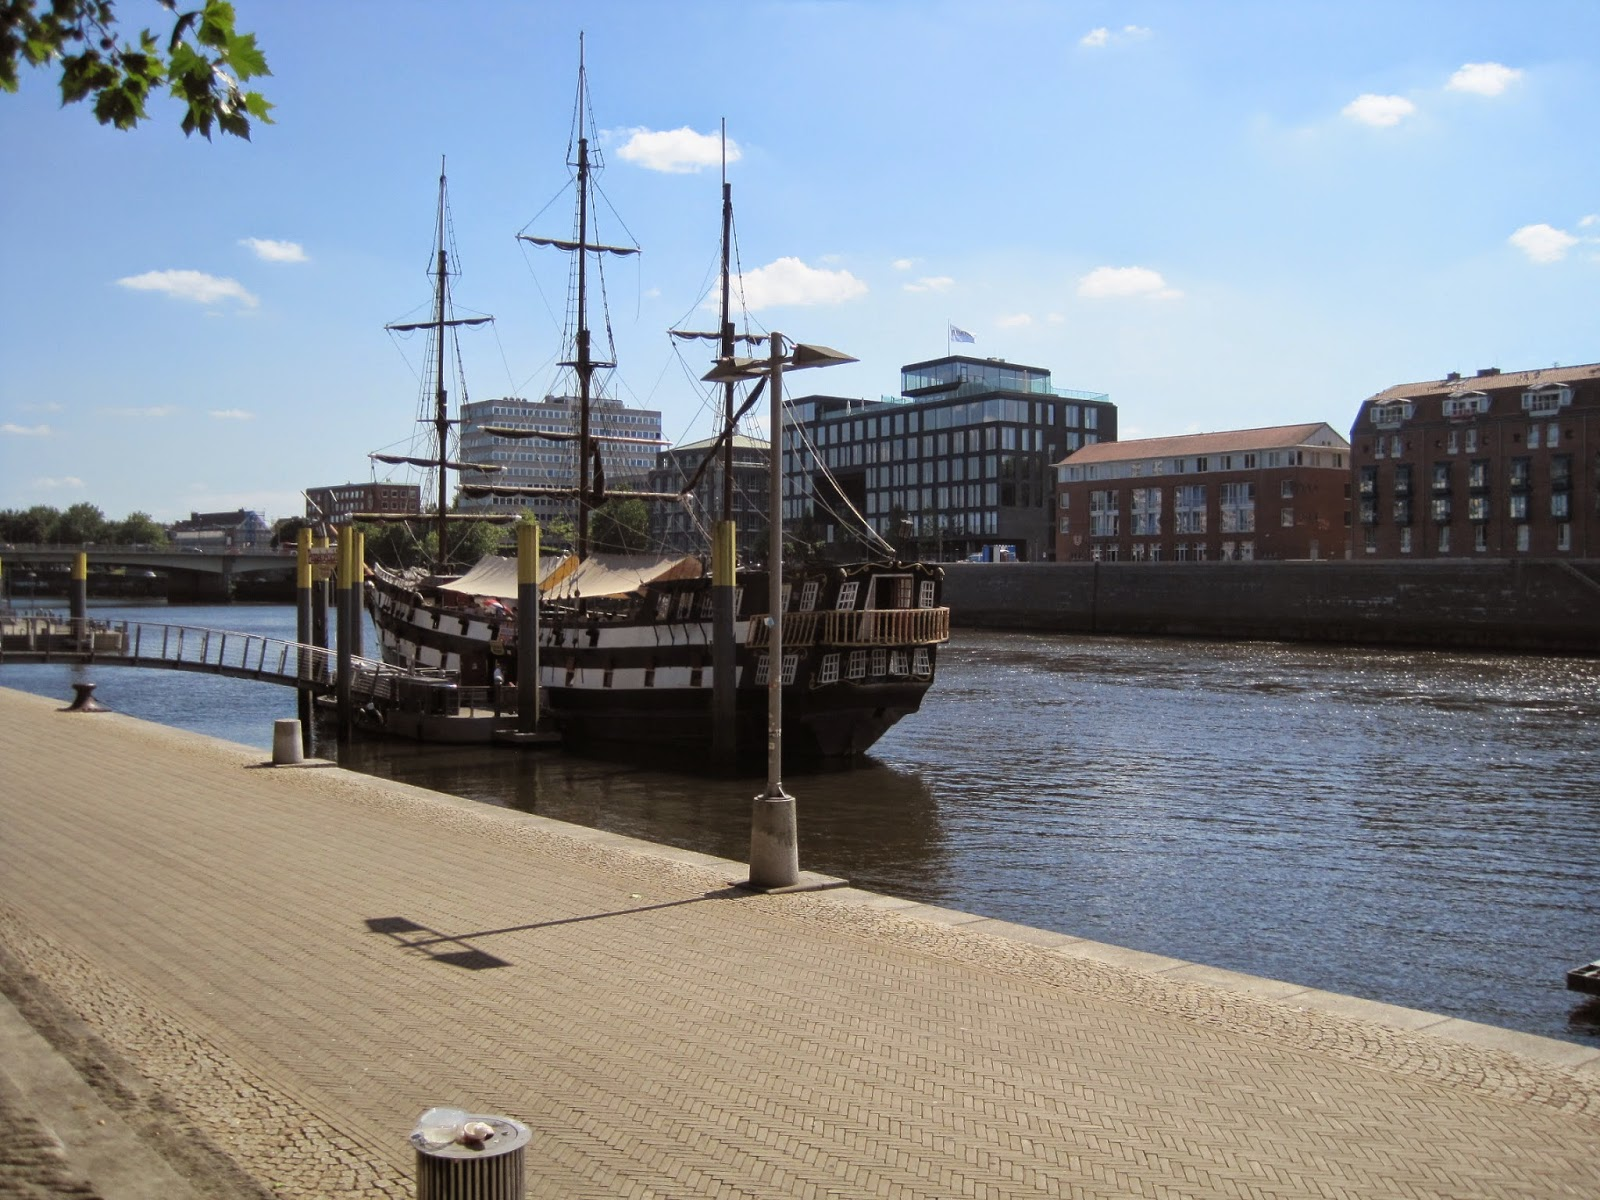 River Weser in Bremen